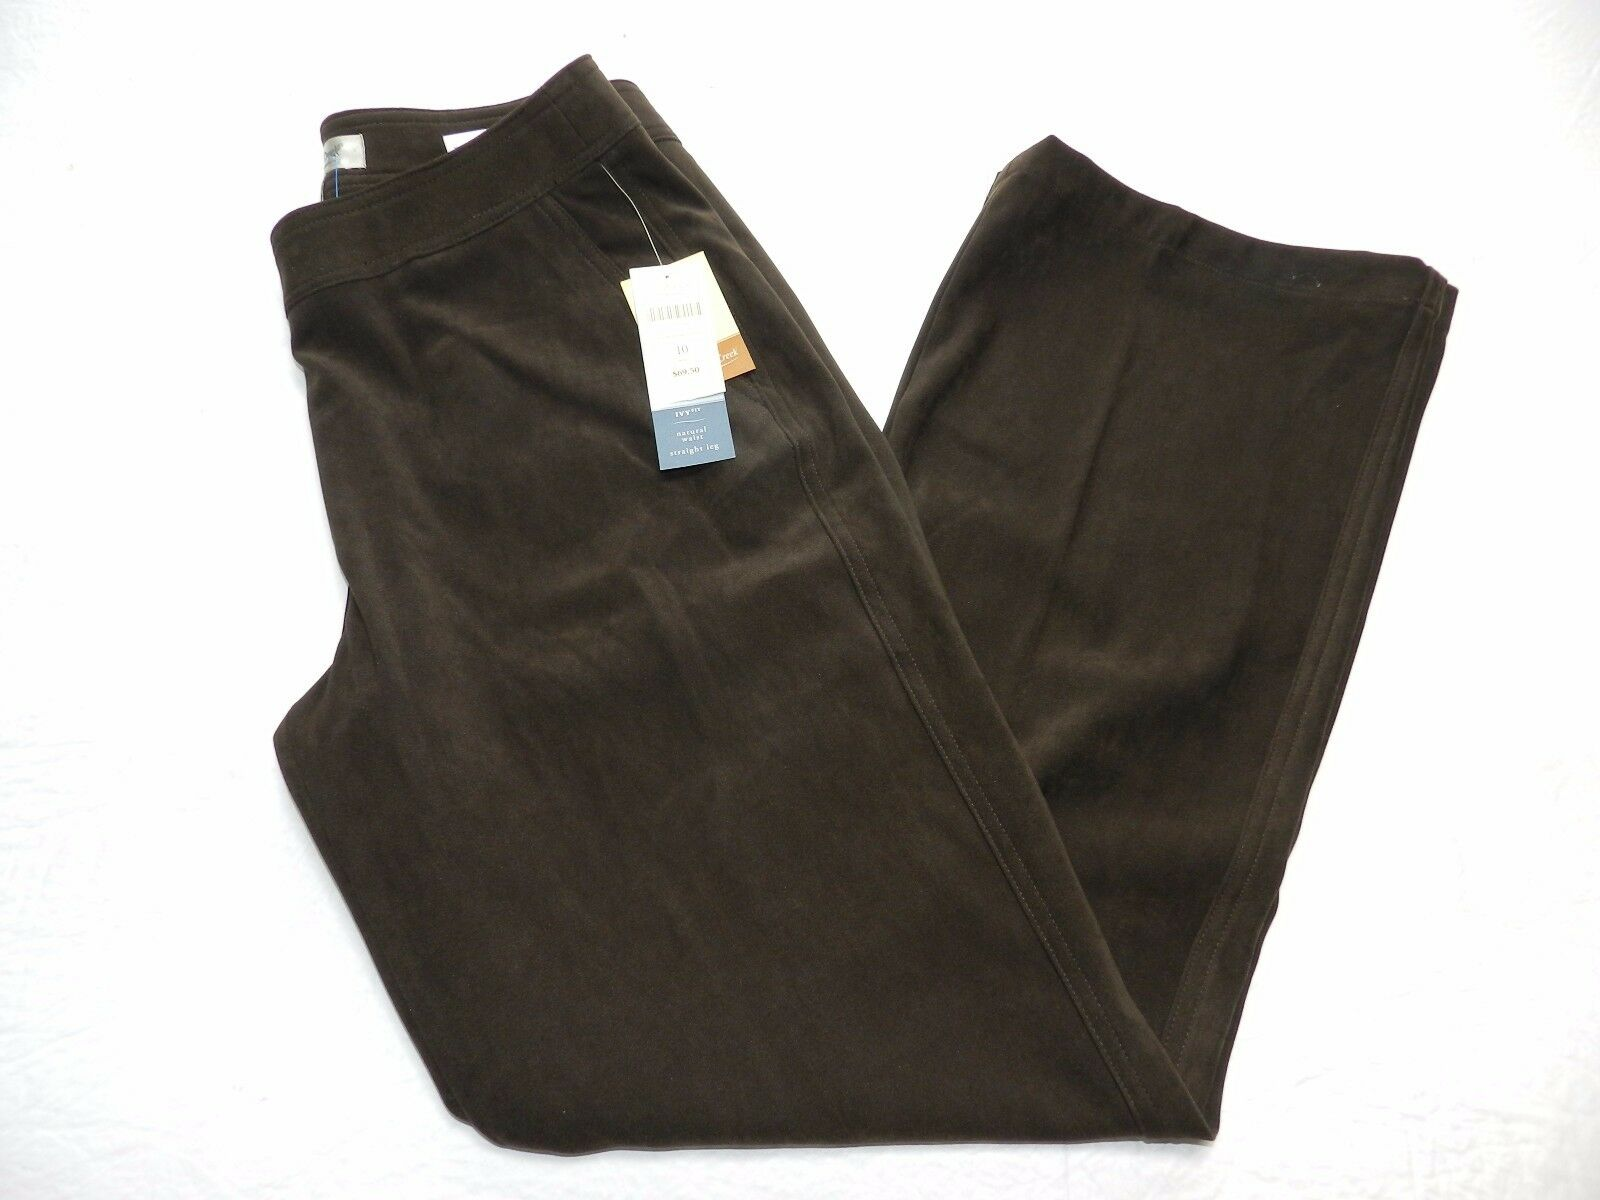 New - WOMENS brown ivy fit moleskin PANTS = COLDWATER CREEK = SIZE 10 = km36